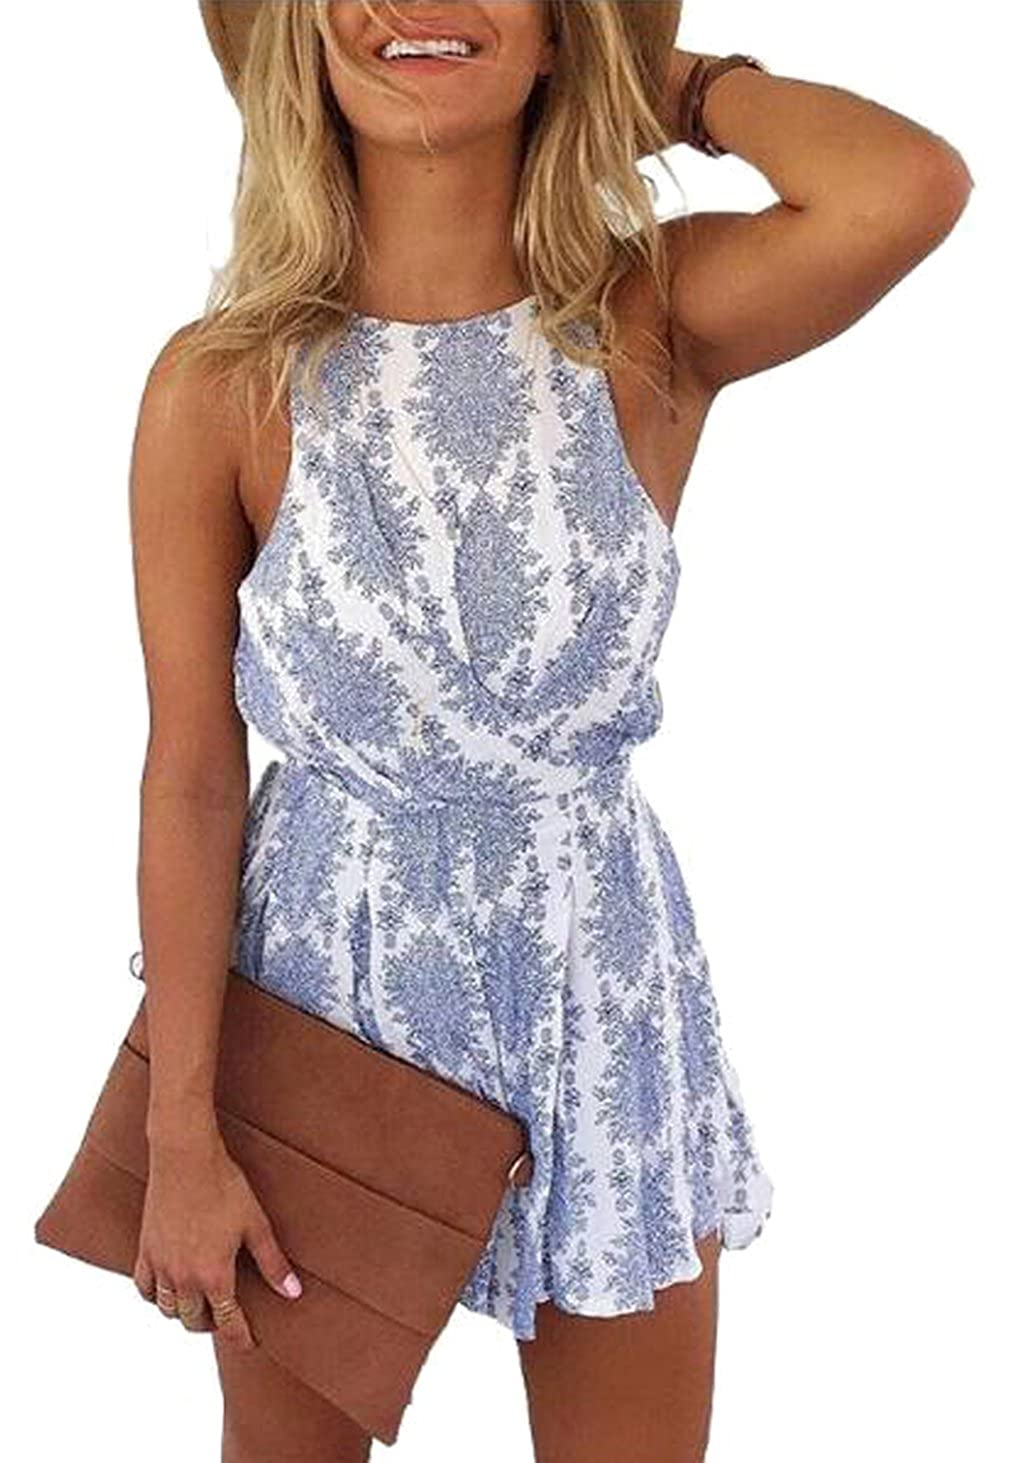 05ffc1e7a93 Amazon.com  MAXIMGR Womens Sexy Strap Sleeveless Bohemian Playsuits Summer  Backless Jumpsuit Romper Shorts  Clothing